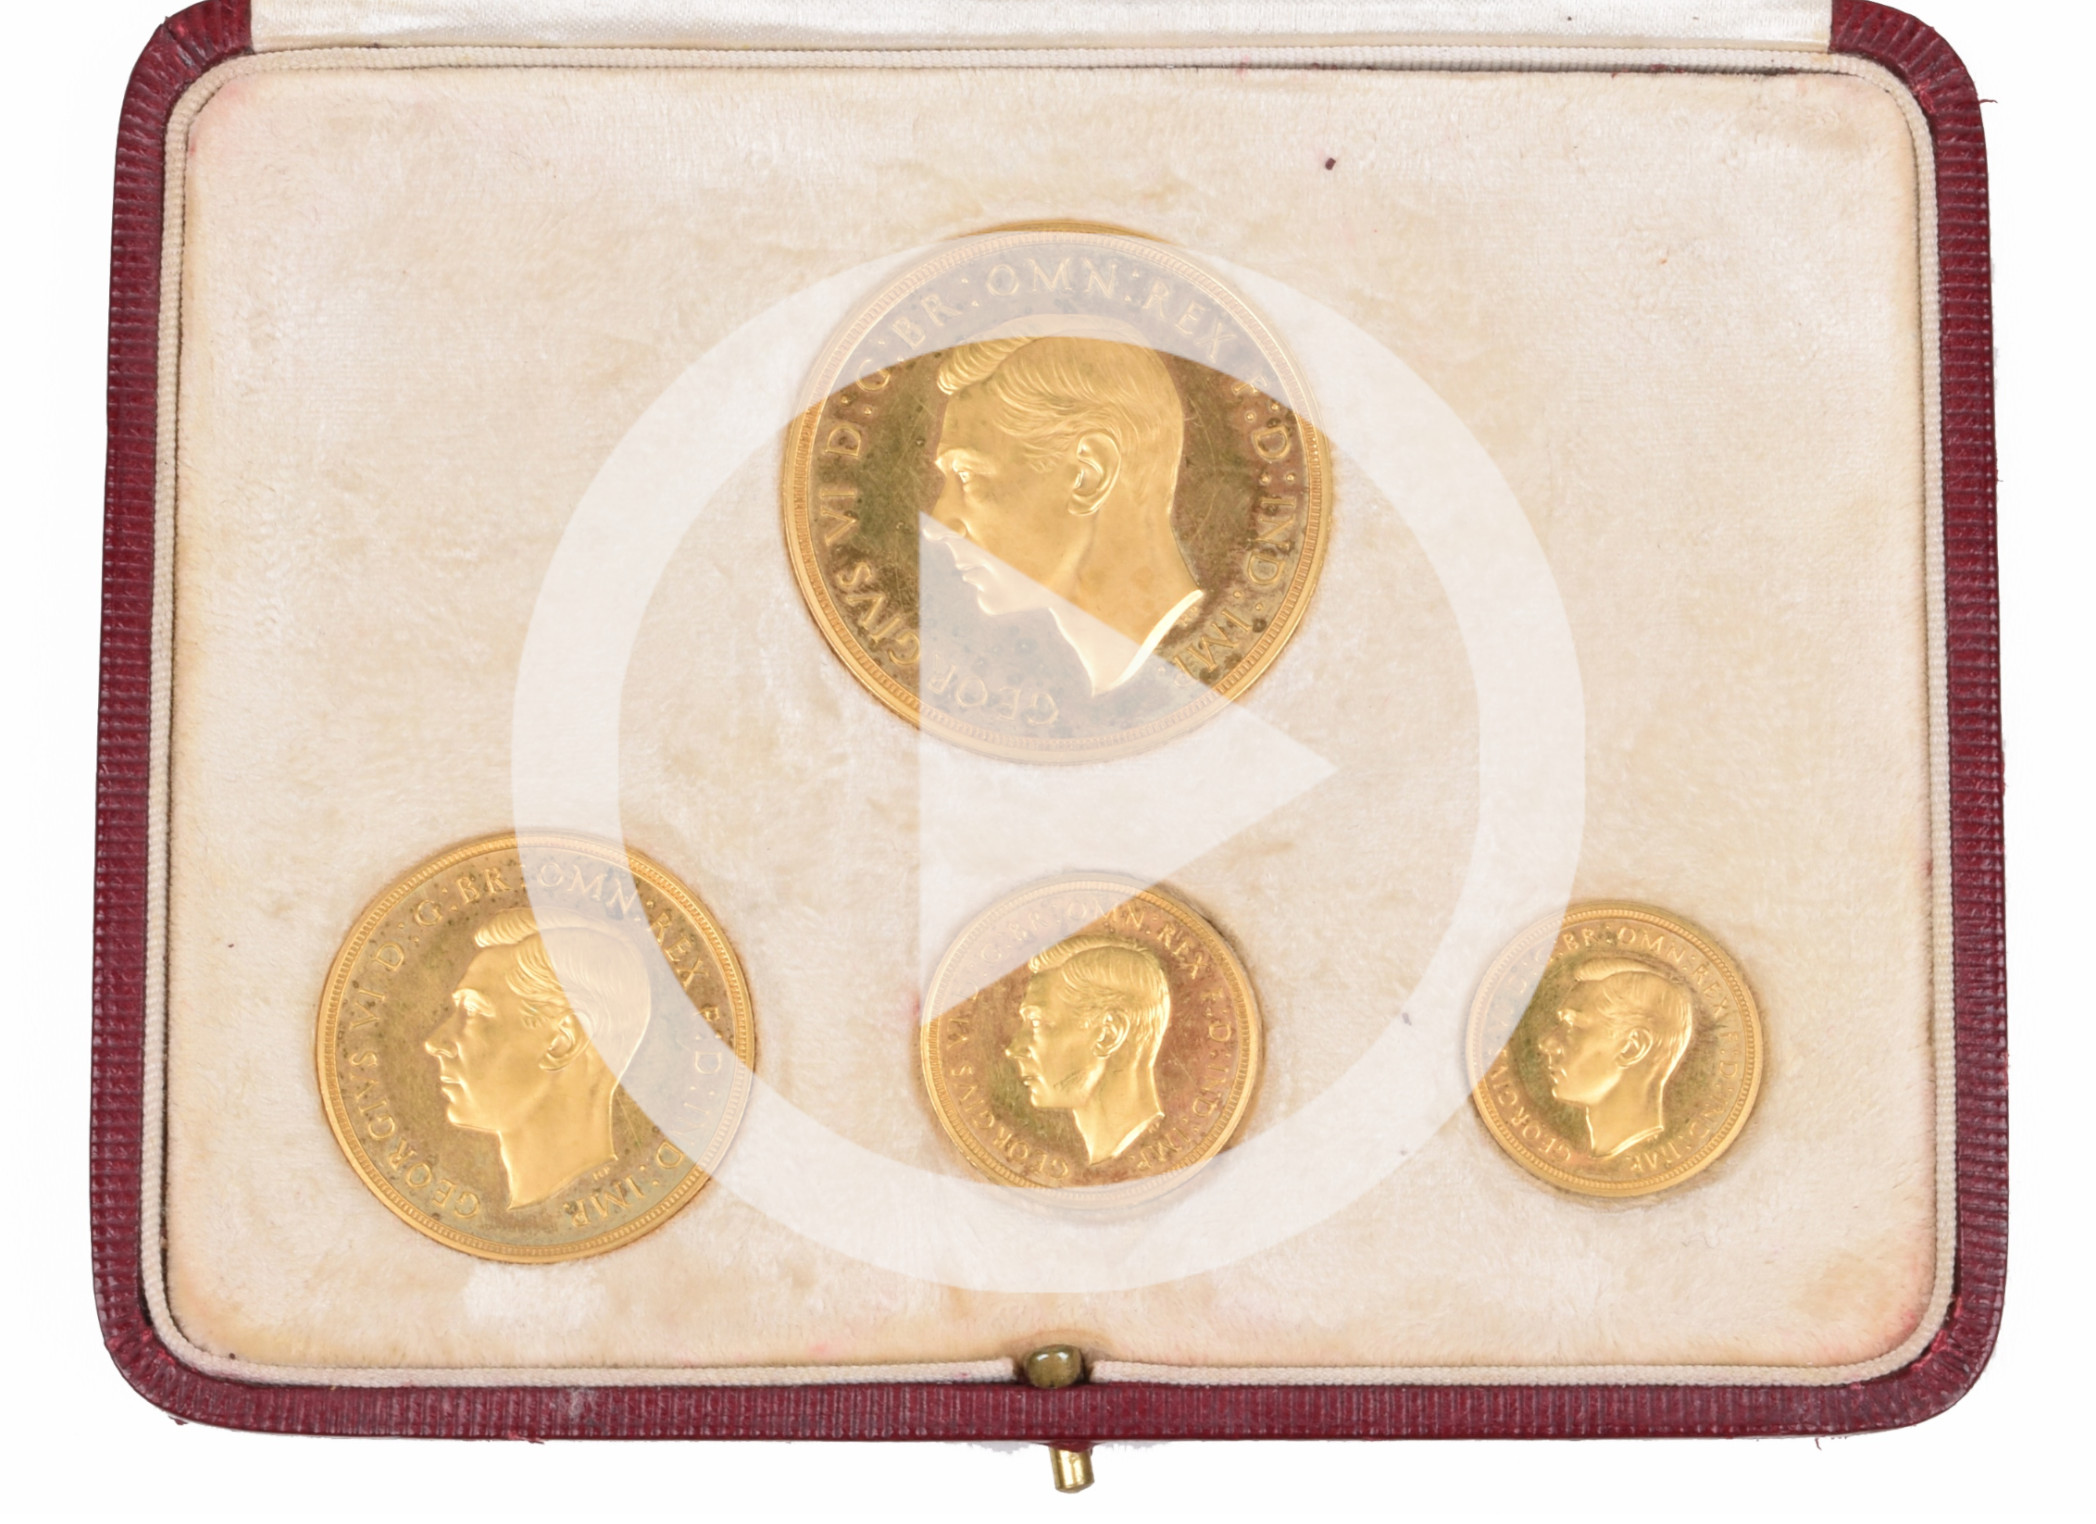 Collection of Gold English Guineas and Sovereigns